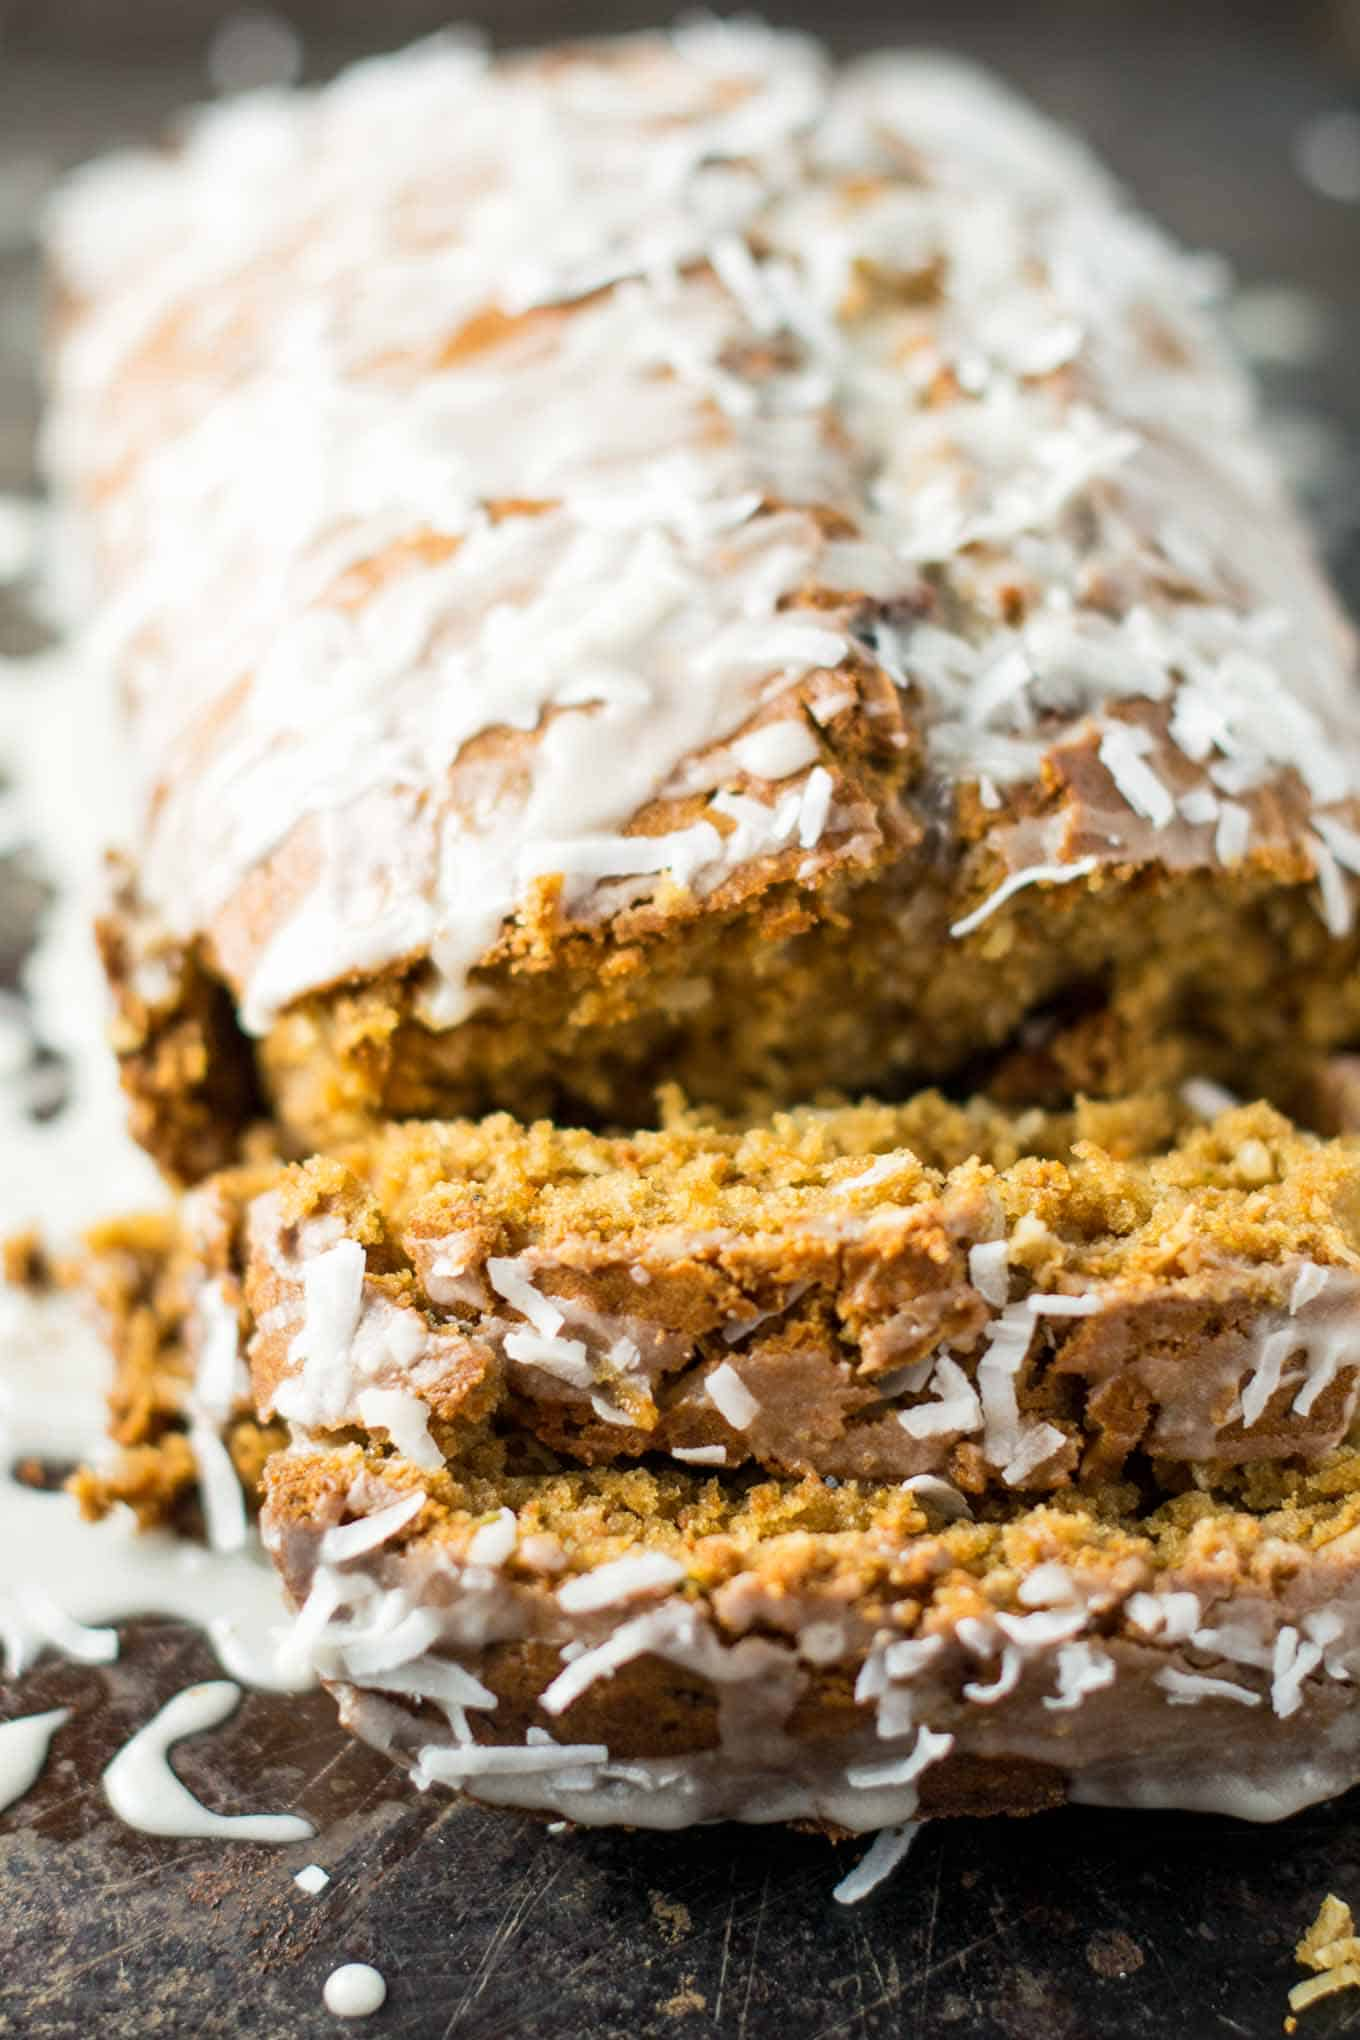 fresh tasting sweet coconut lime bread recipe made with coconut milk and limes.